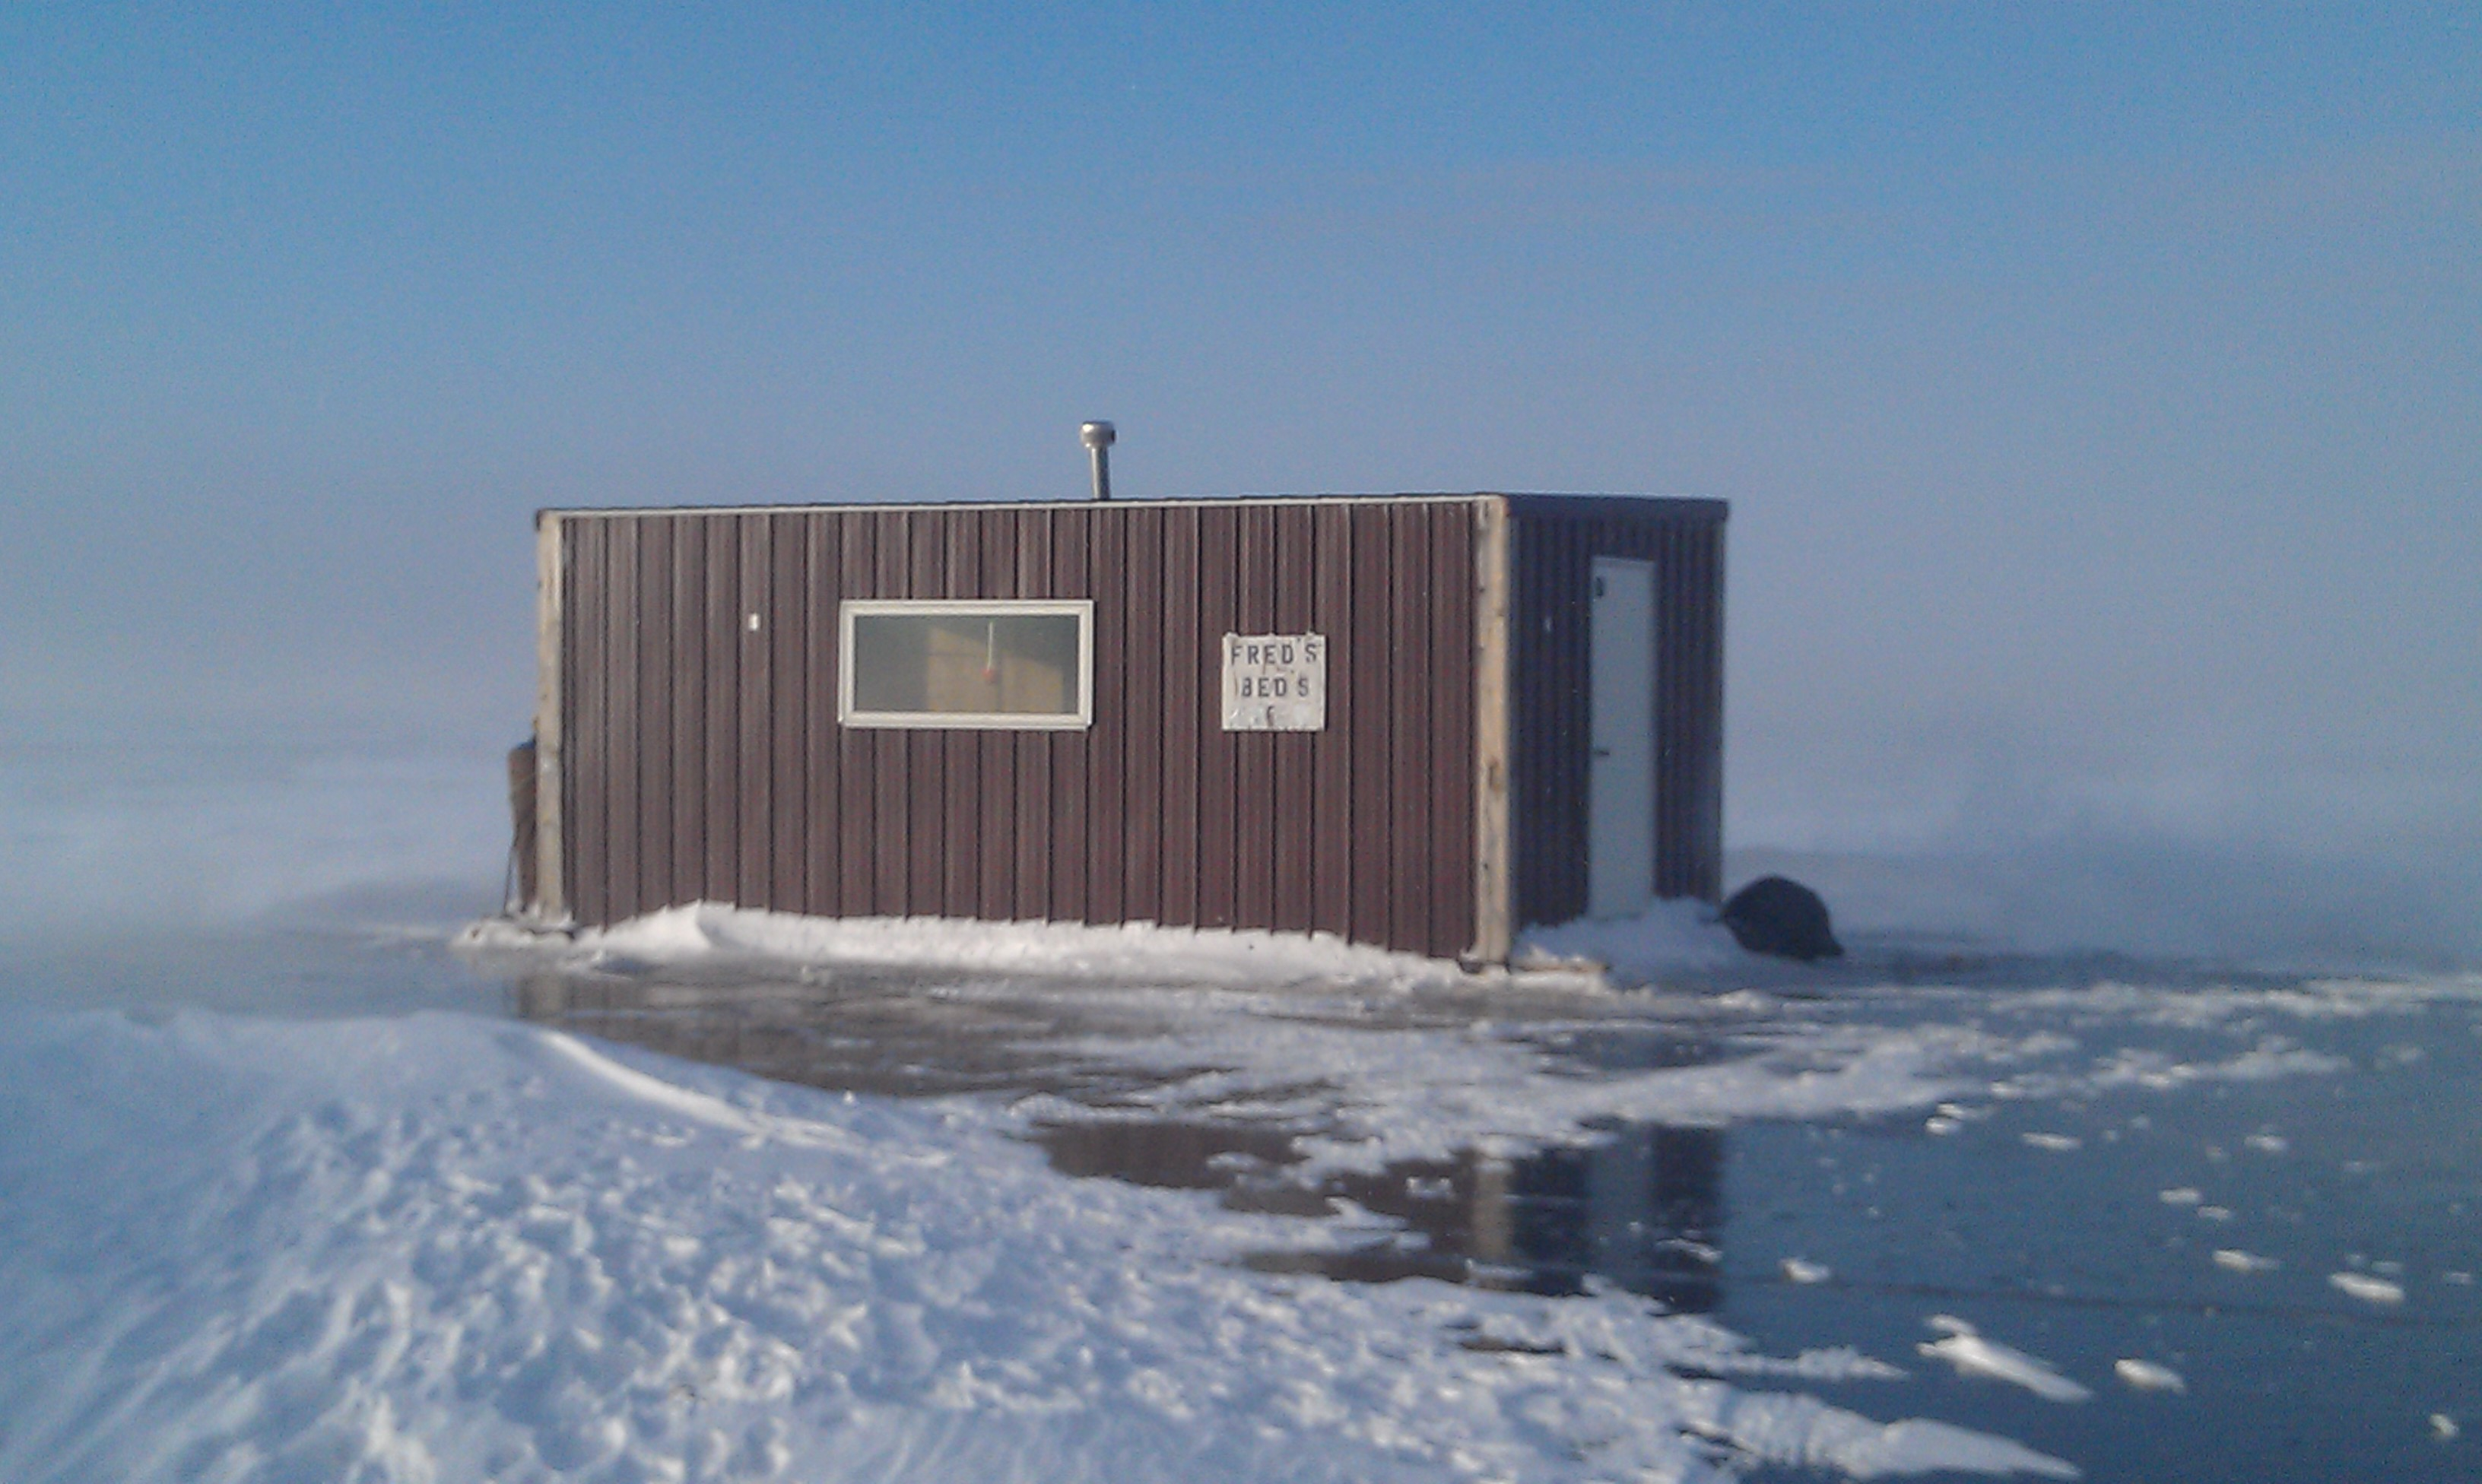 Fred s beds ice fishing sprearing for Lake of the woods fishing lodges